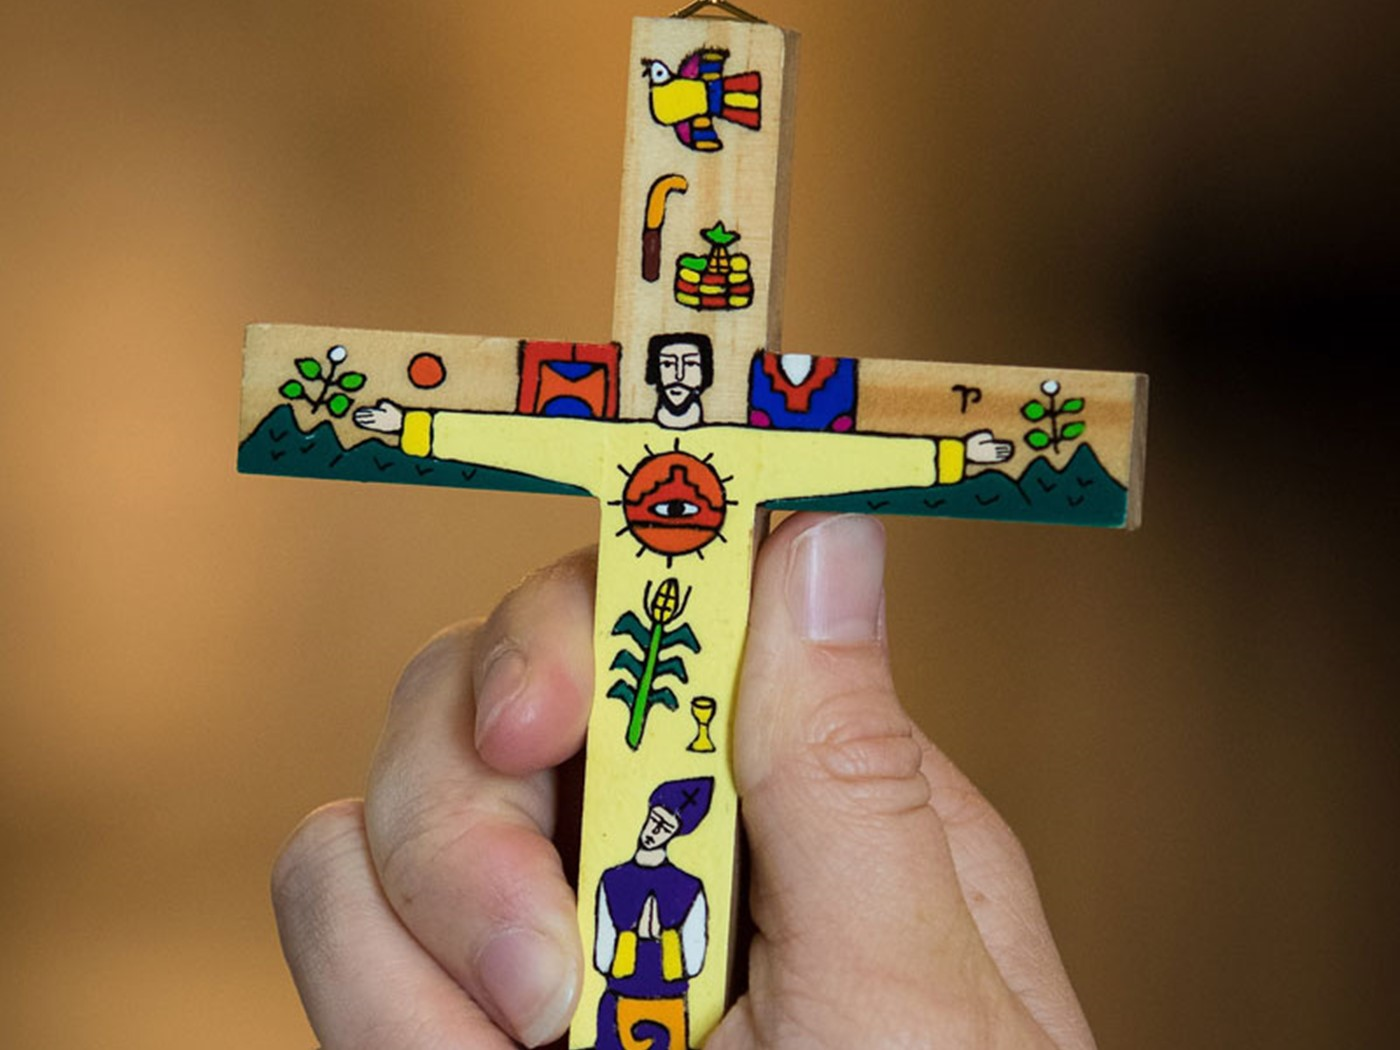 The Salvadorian Cross, given to all members of the congregation